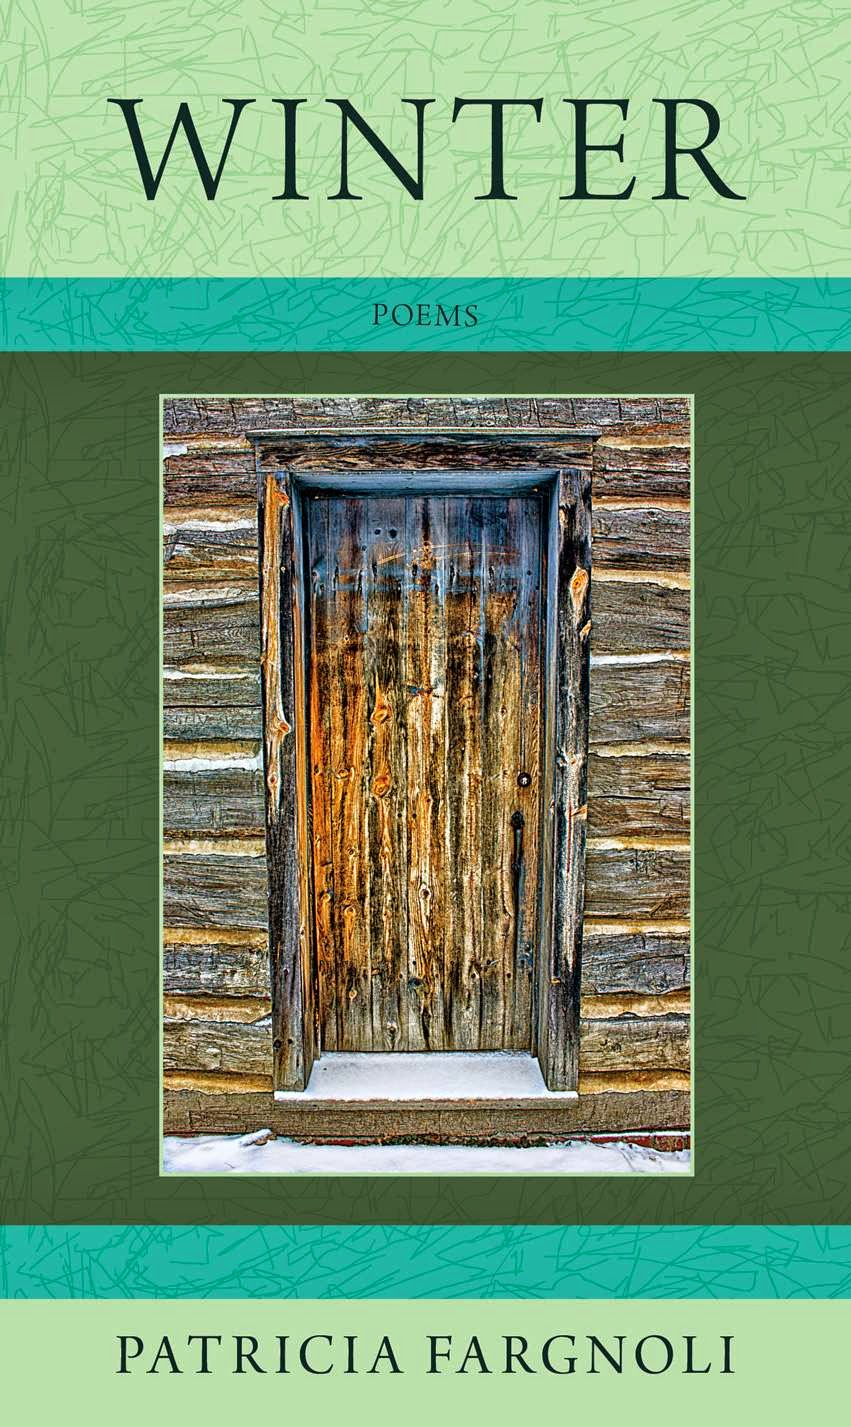 http://www.amazon.com/Winter-Hobblebush-Granite-State-Poetry/dp/1939449014/ref=sr_1_1?s=books&ie=UTF8&qid=1394983184&sr=1-1&keywords=patricia+fargnoli+winter